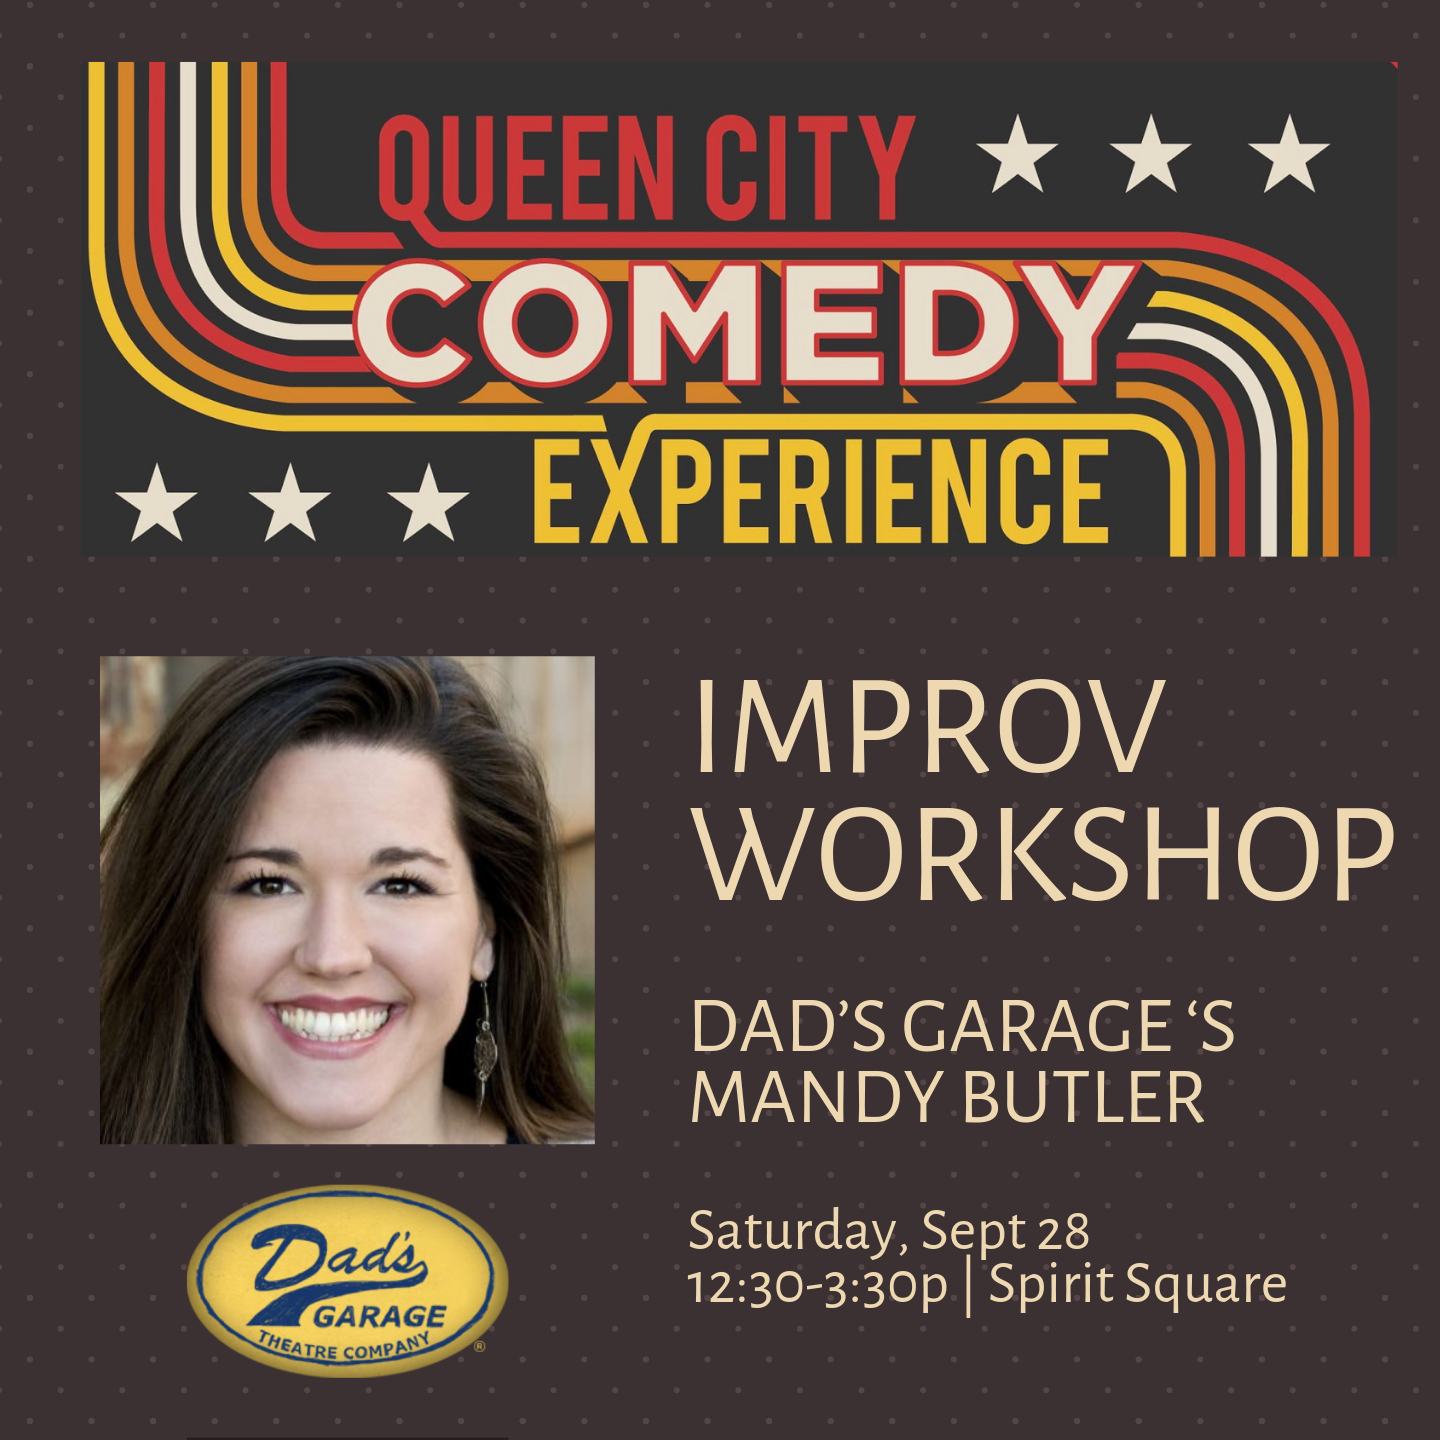 Queen City Comedy Experience Workshop: Improv Booster Shot for Advanced Improvisers with Mandy Butler from Dad's Garage